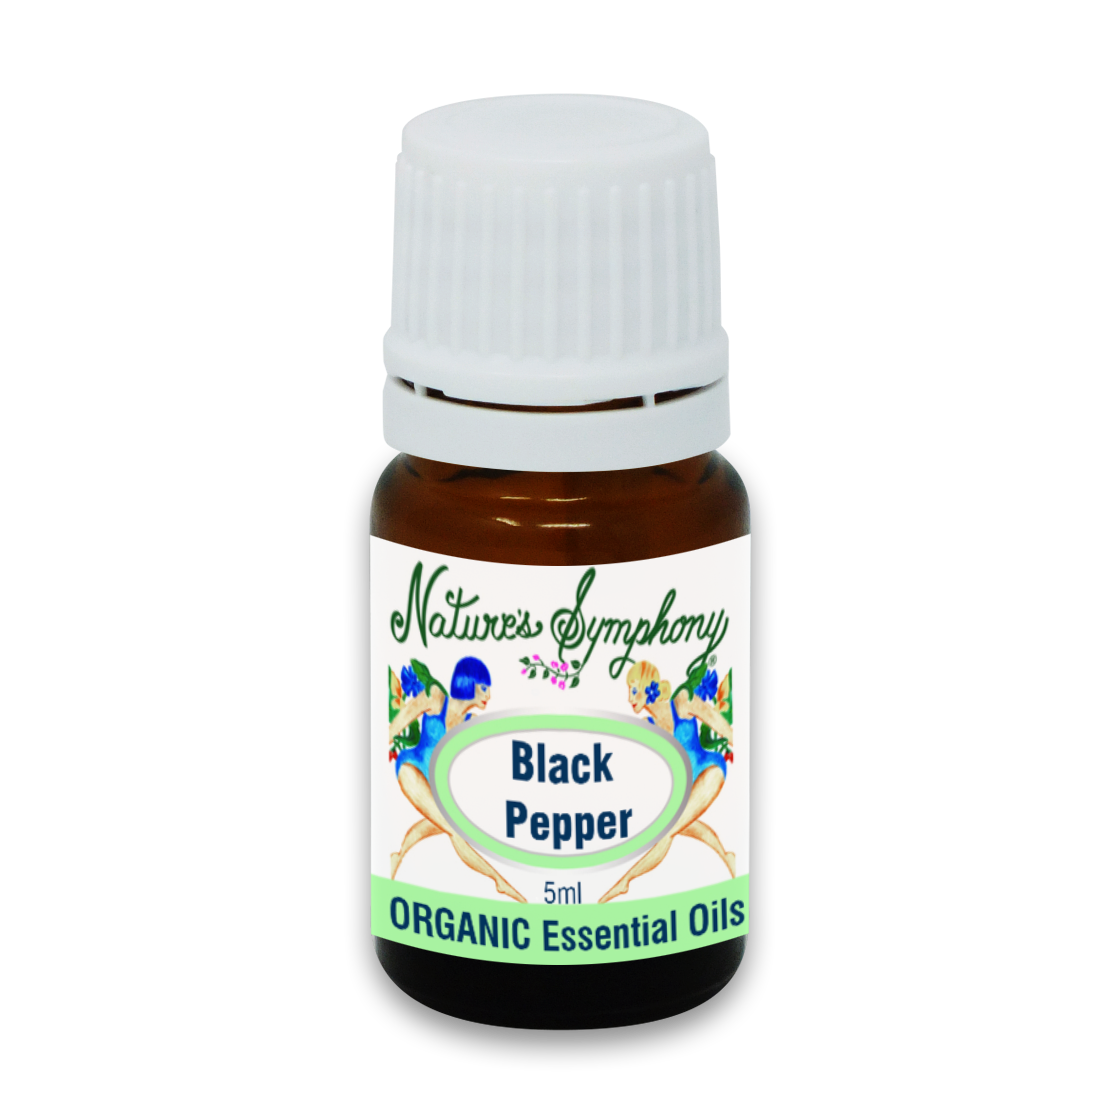 Black Pepper, Organic/Wildcrafted oil - 5ml